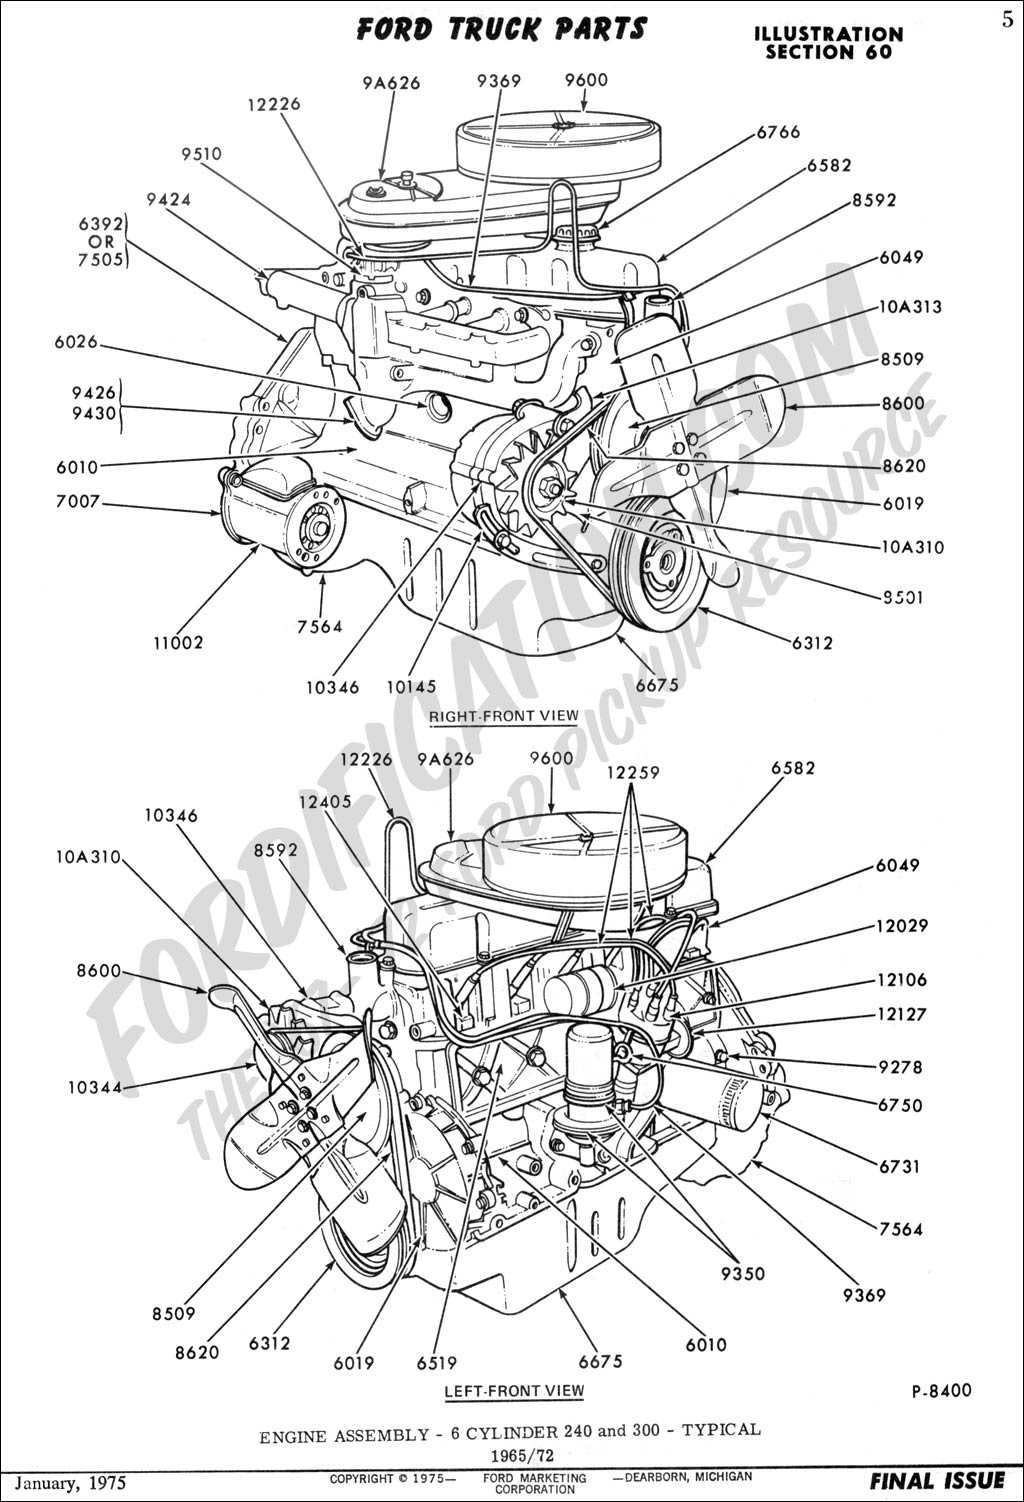 Toyota 1984 22r E Vacuum Line Diagram furthermore RepairGuideContent as well 1098391 Oil Pump Location And Replacement likewise Aaronbot3000 Toyota 1984 22r E Vacuum Line Diagram furthermore 22re Wiring Diagram. on 1986 toyota pickup 22r vacuum diagrams